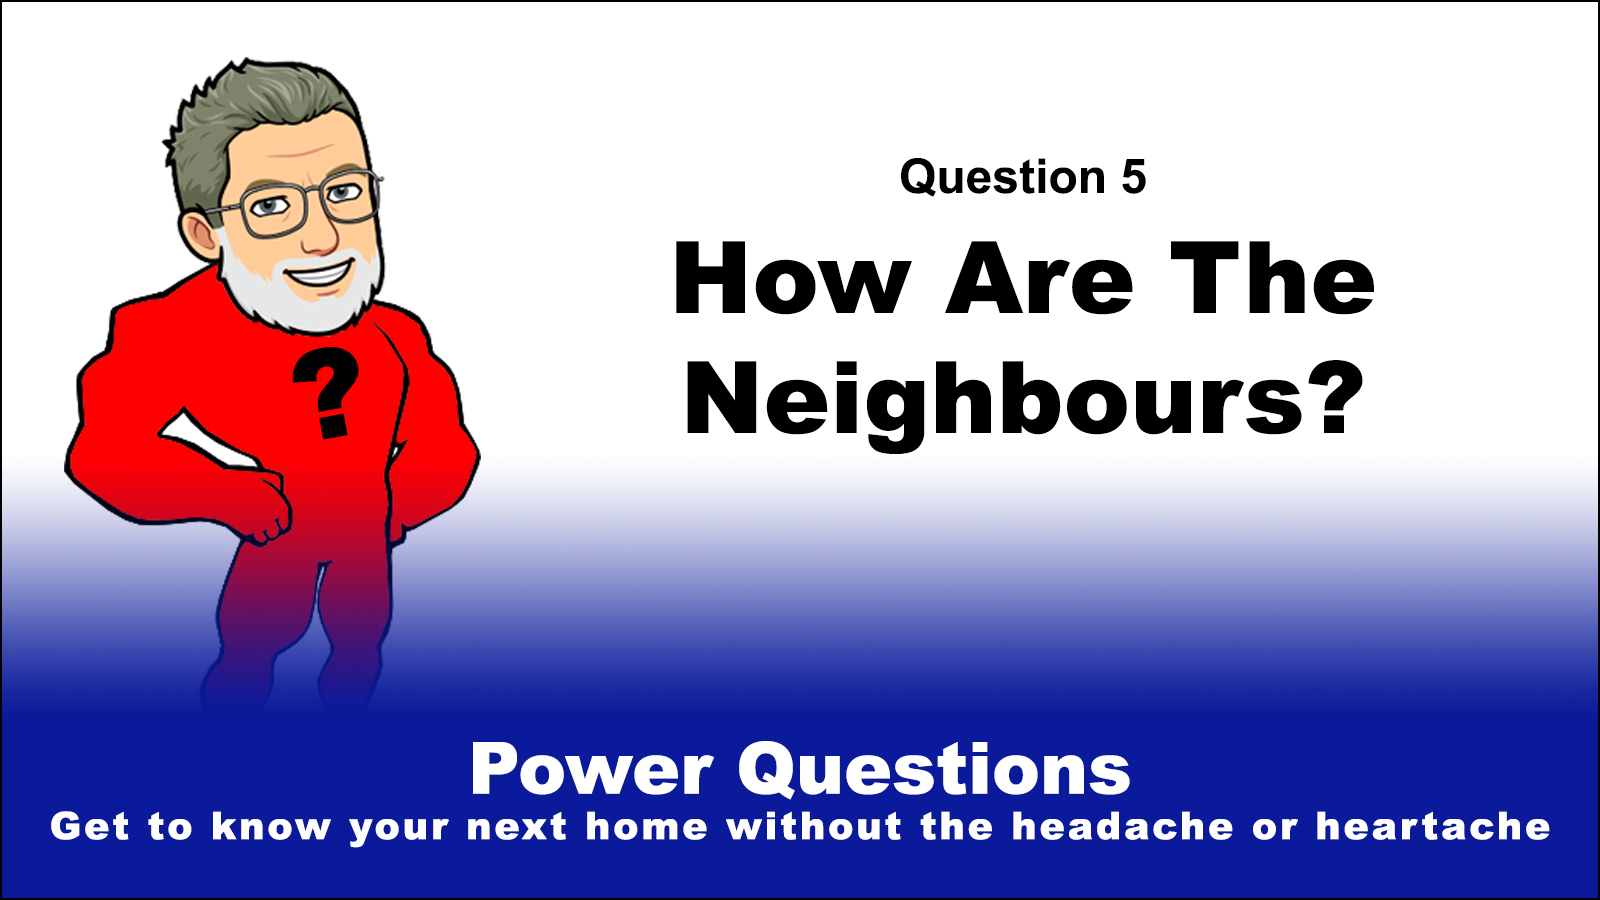 Power Question 5:  How Are The Neighbours?